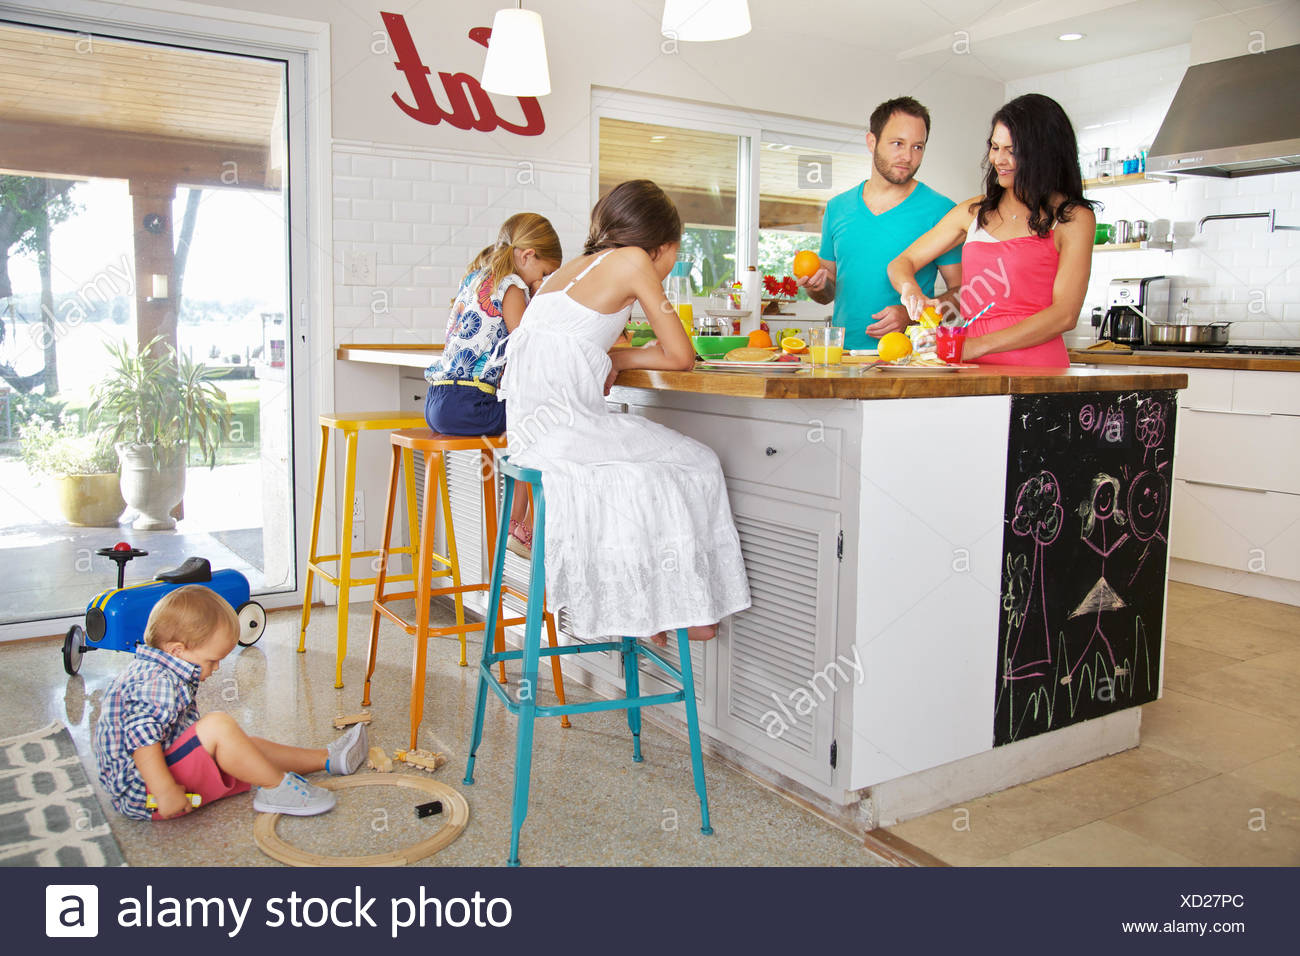 Mid adult parents and three children preparing breakfast in kitchen - Stock Image